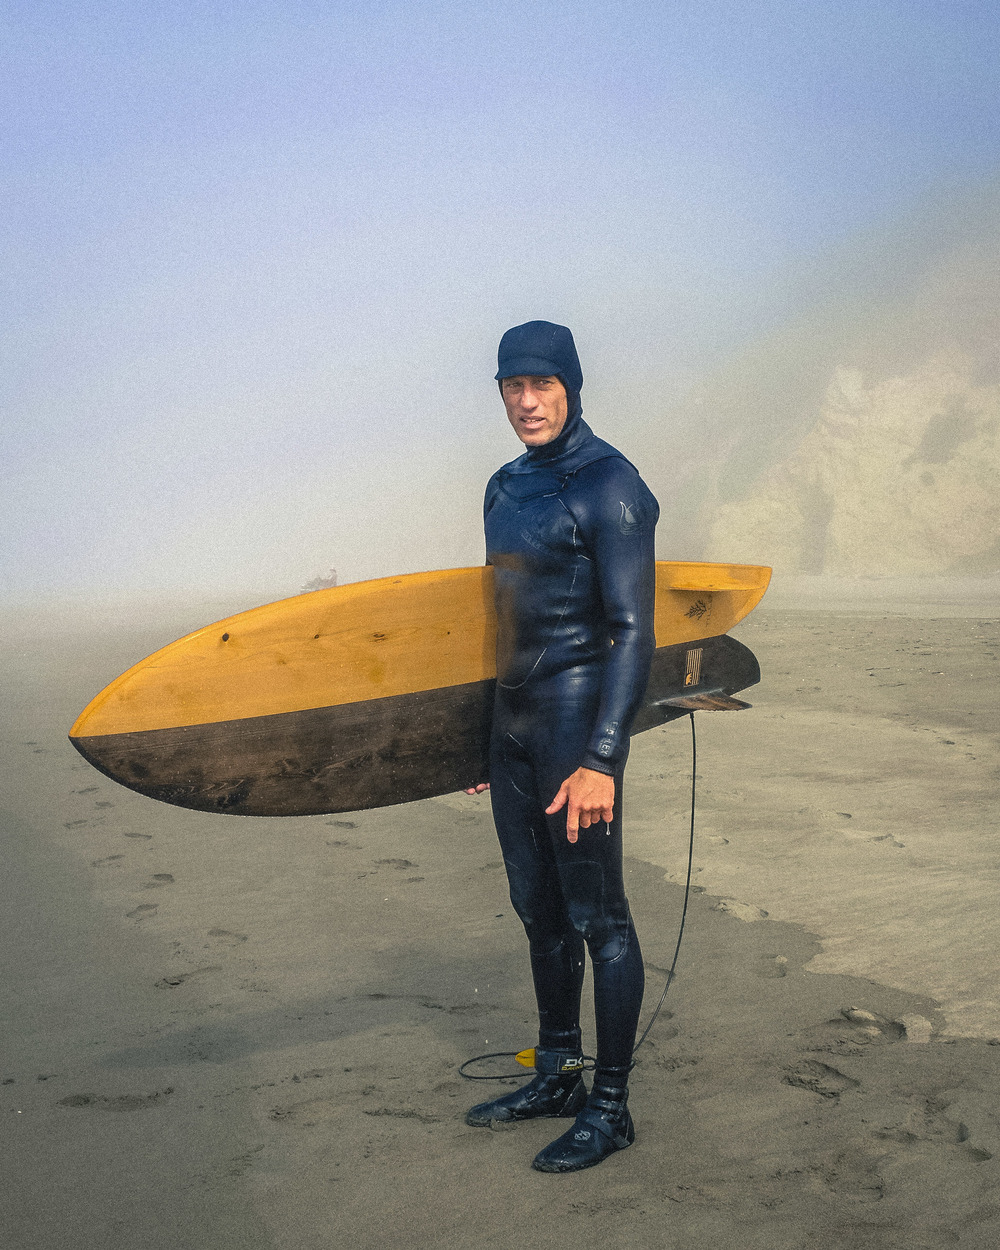 Black-Bear-Brand-Tilley-Surfboards-Water-Testing-04.jpg